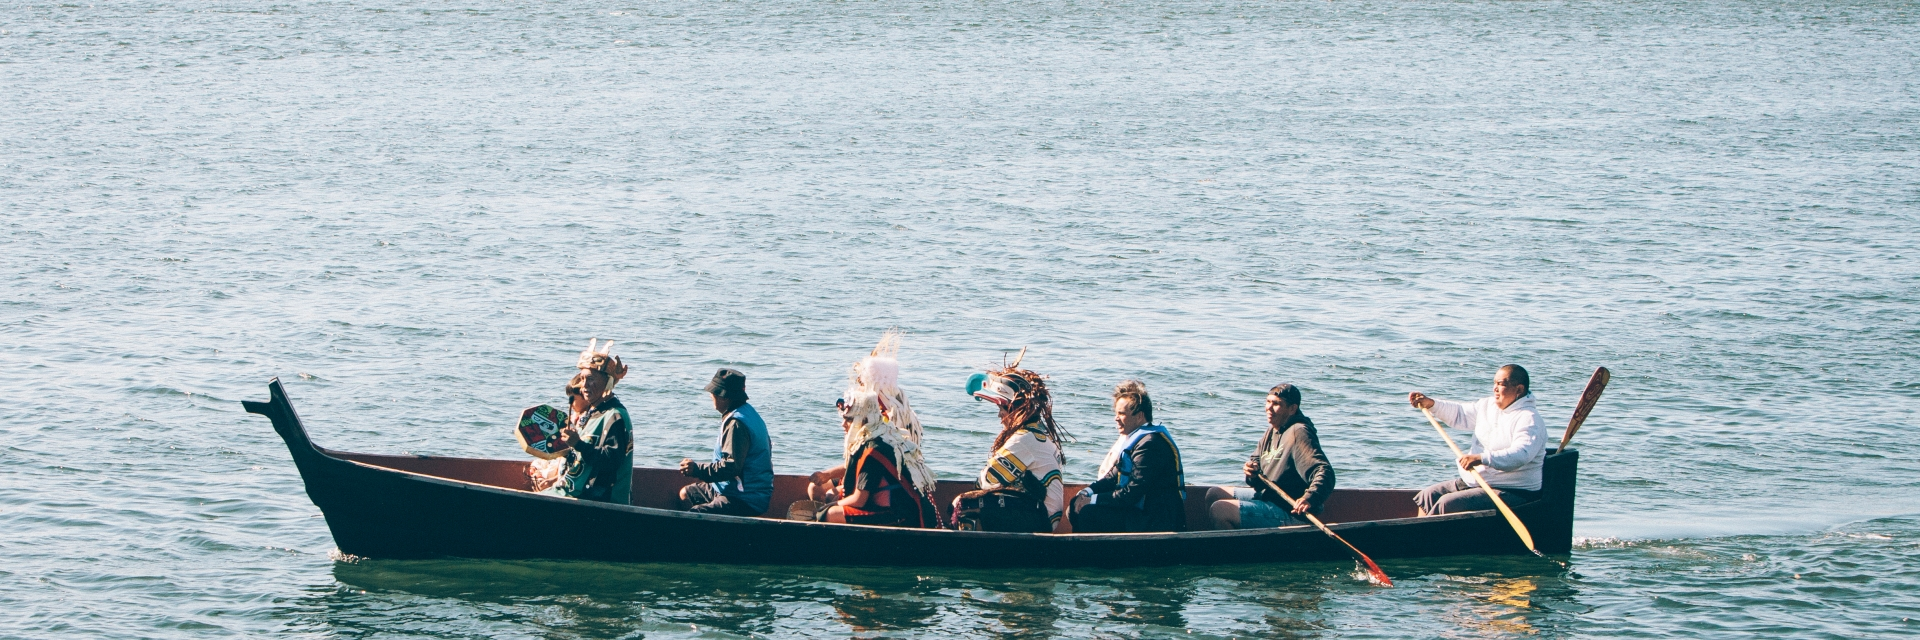 A group of people wearing traditional Indigenous clothing paddle on a canoe in the Victoria harbour.